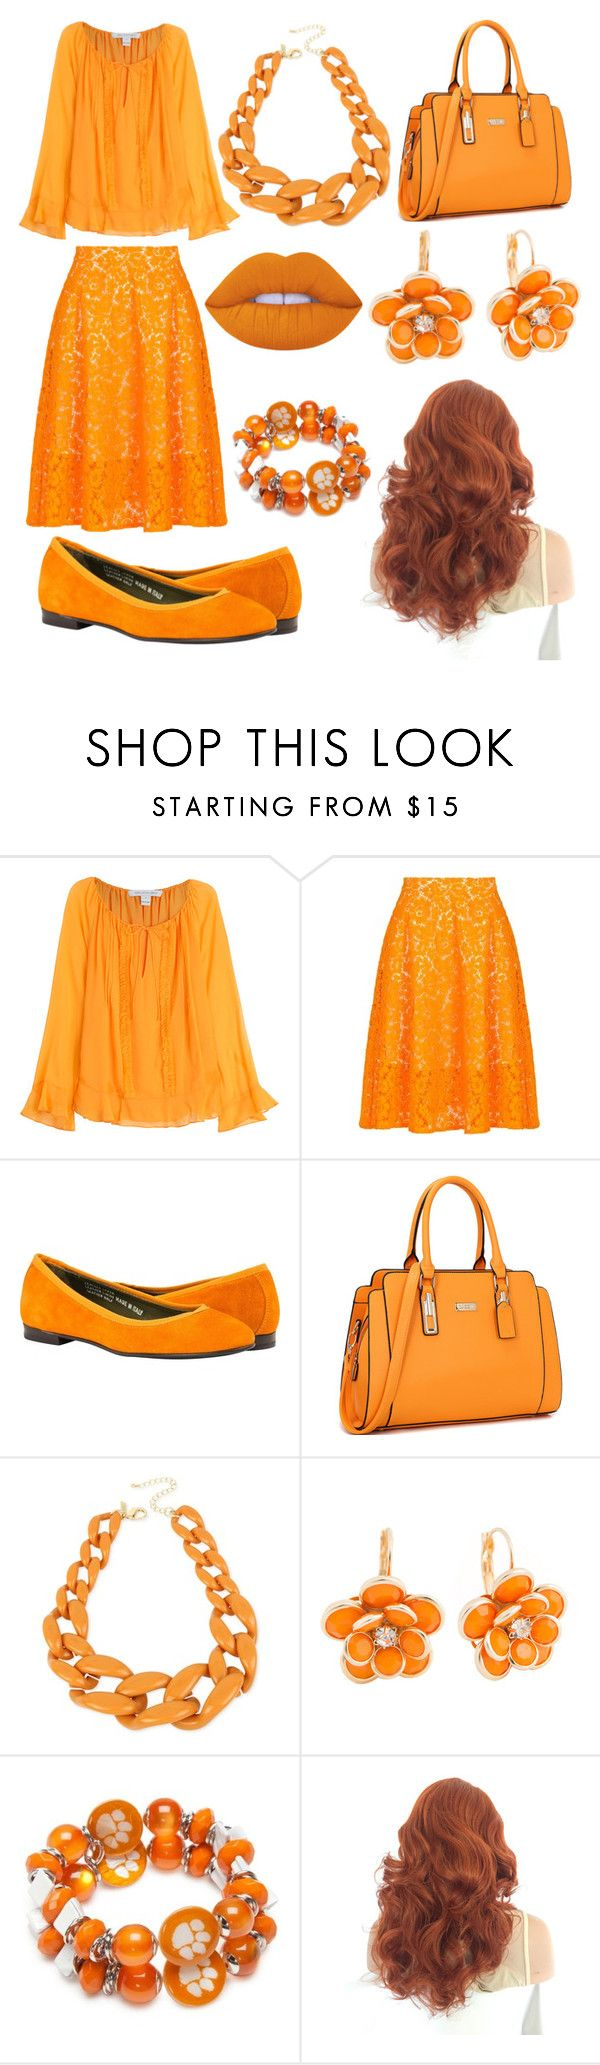 """16"" by cristina-vanau on Polyvore featuring Diane Von Furstenberg, MSGM, INC International Concepts, Mixit, Accessory PLAYS and Lime Crime"